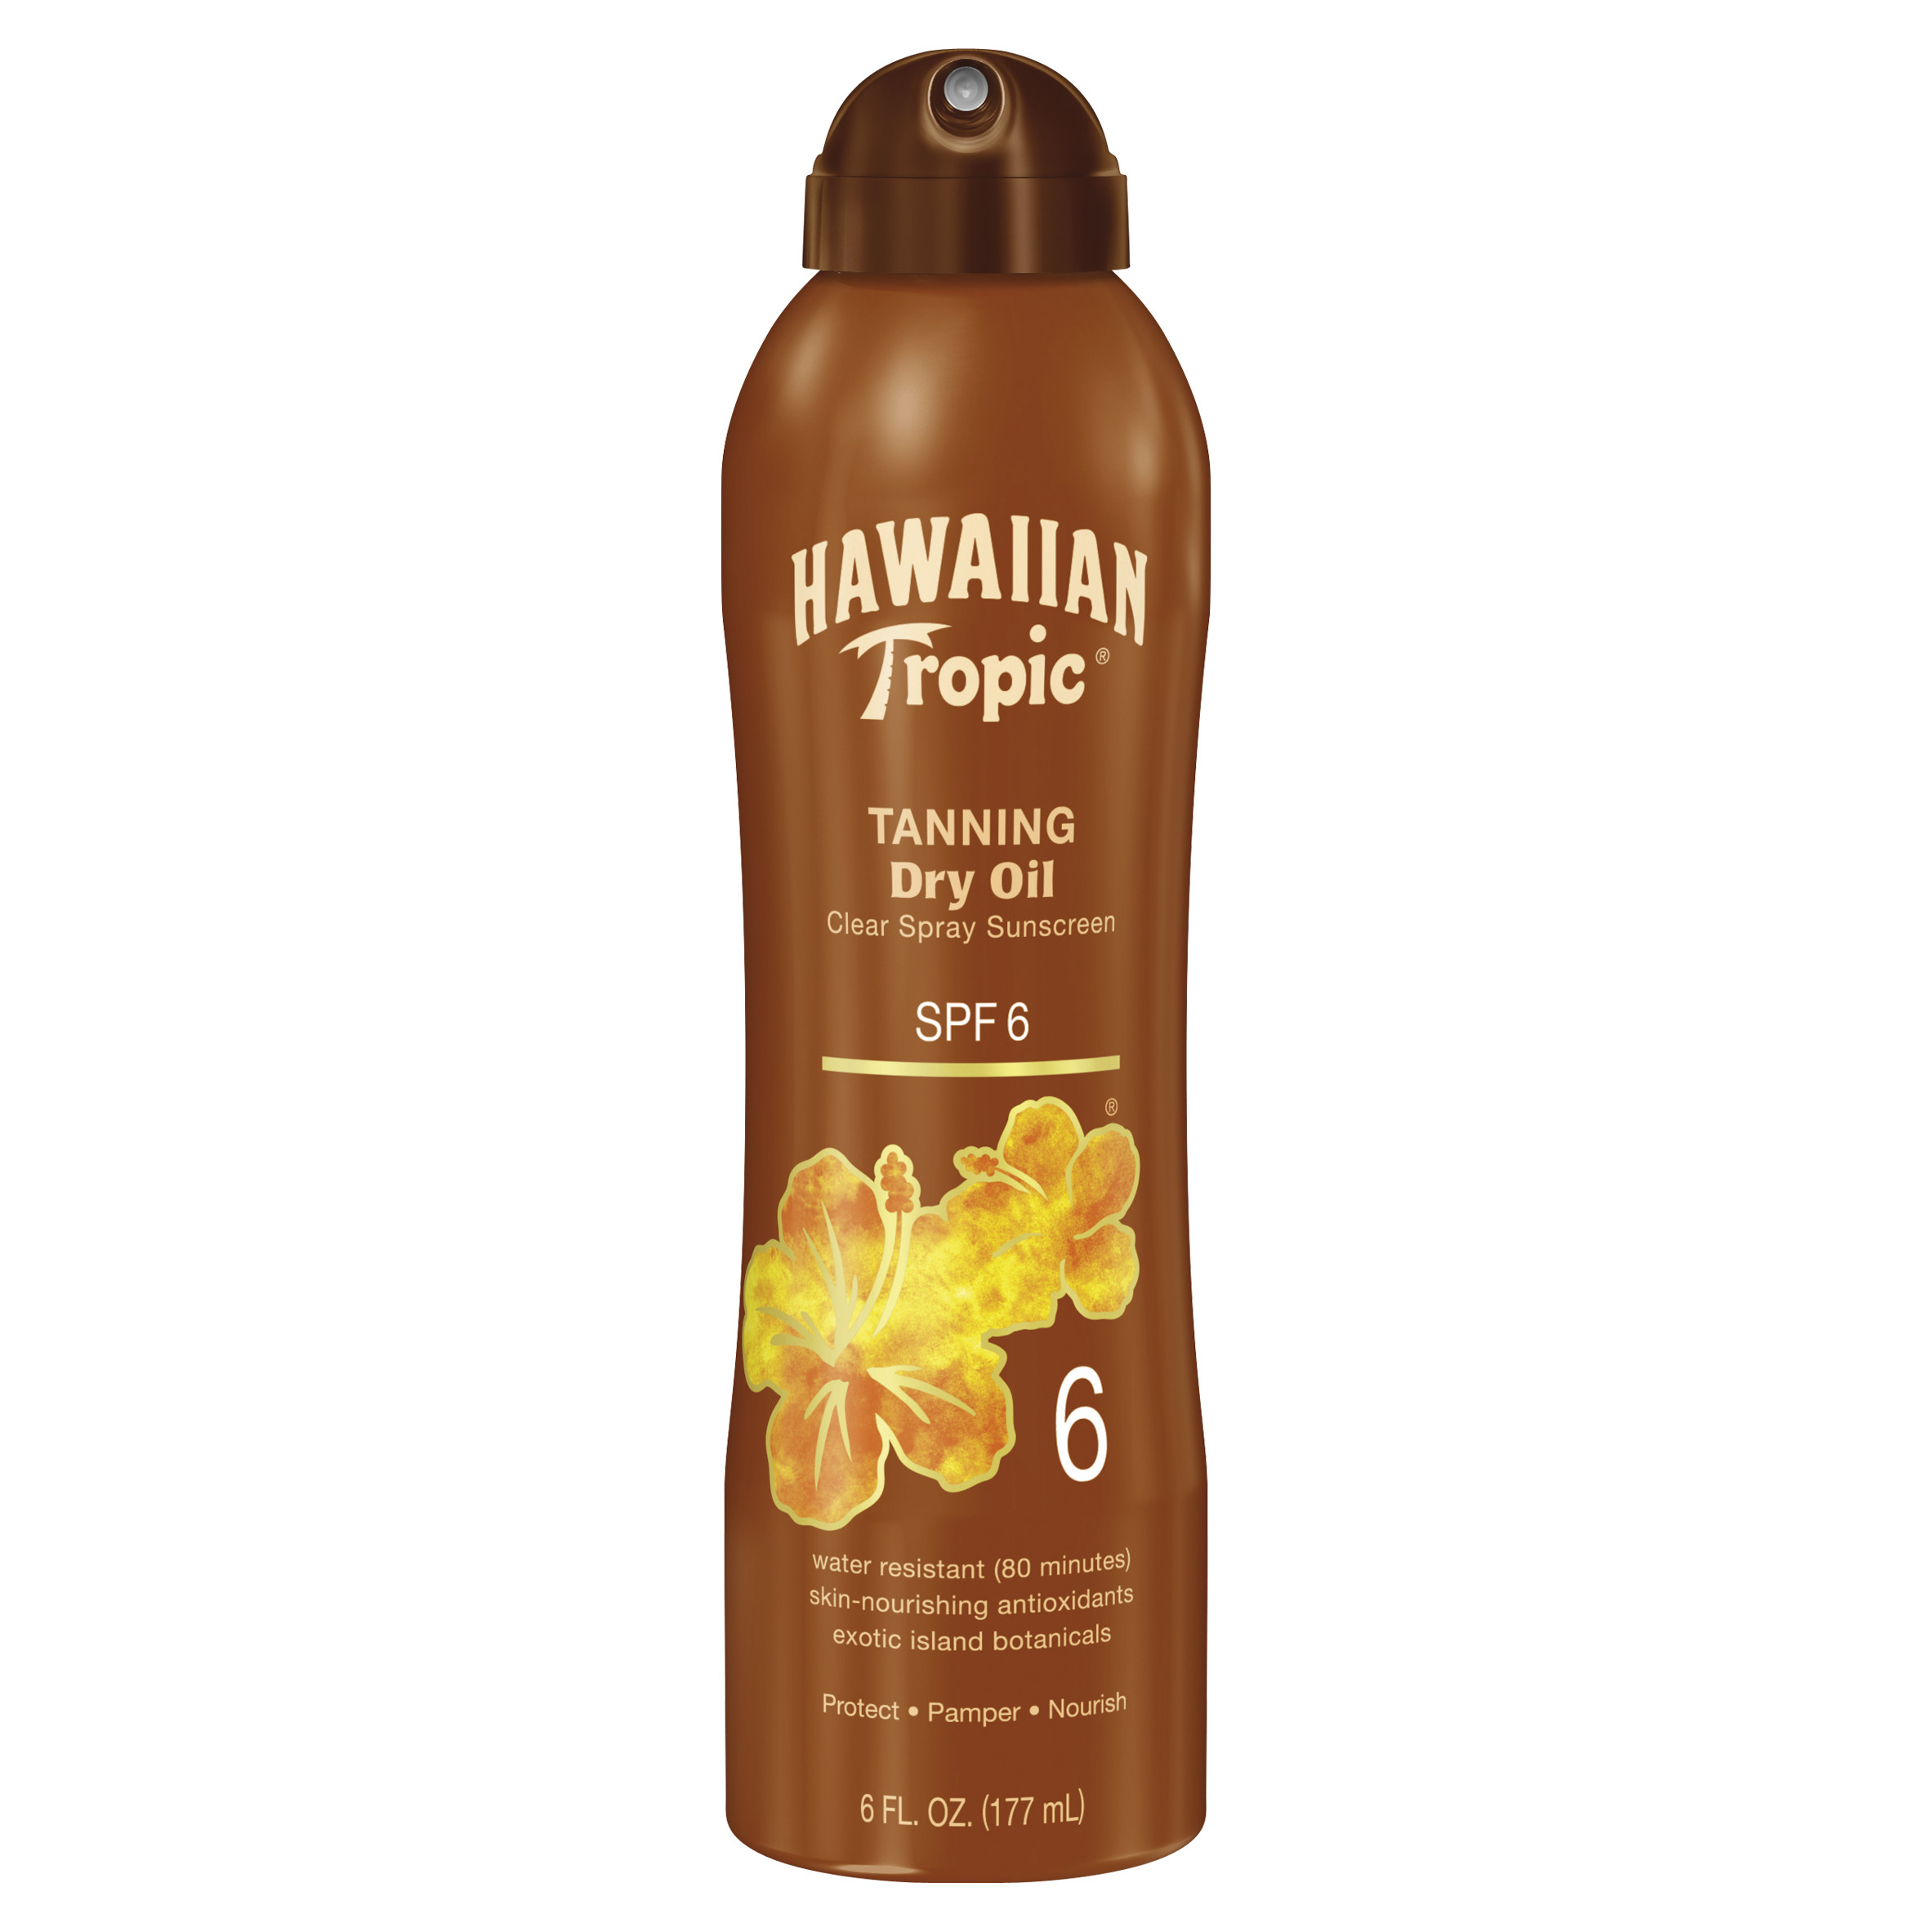 Hawaiian Tropic Dry Oil Clear Spray Sunscreen SPF 6, 6 oz